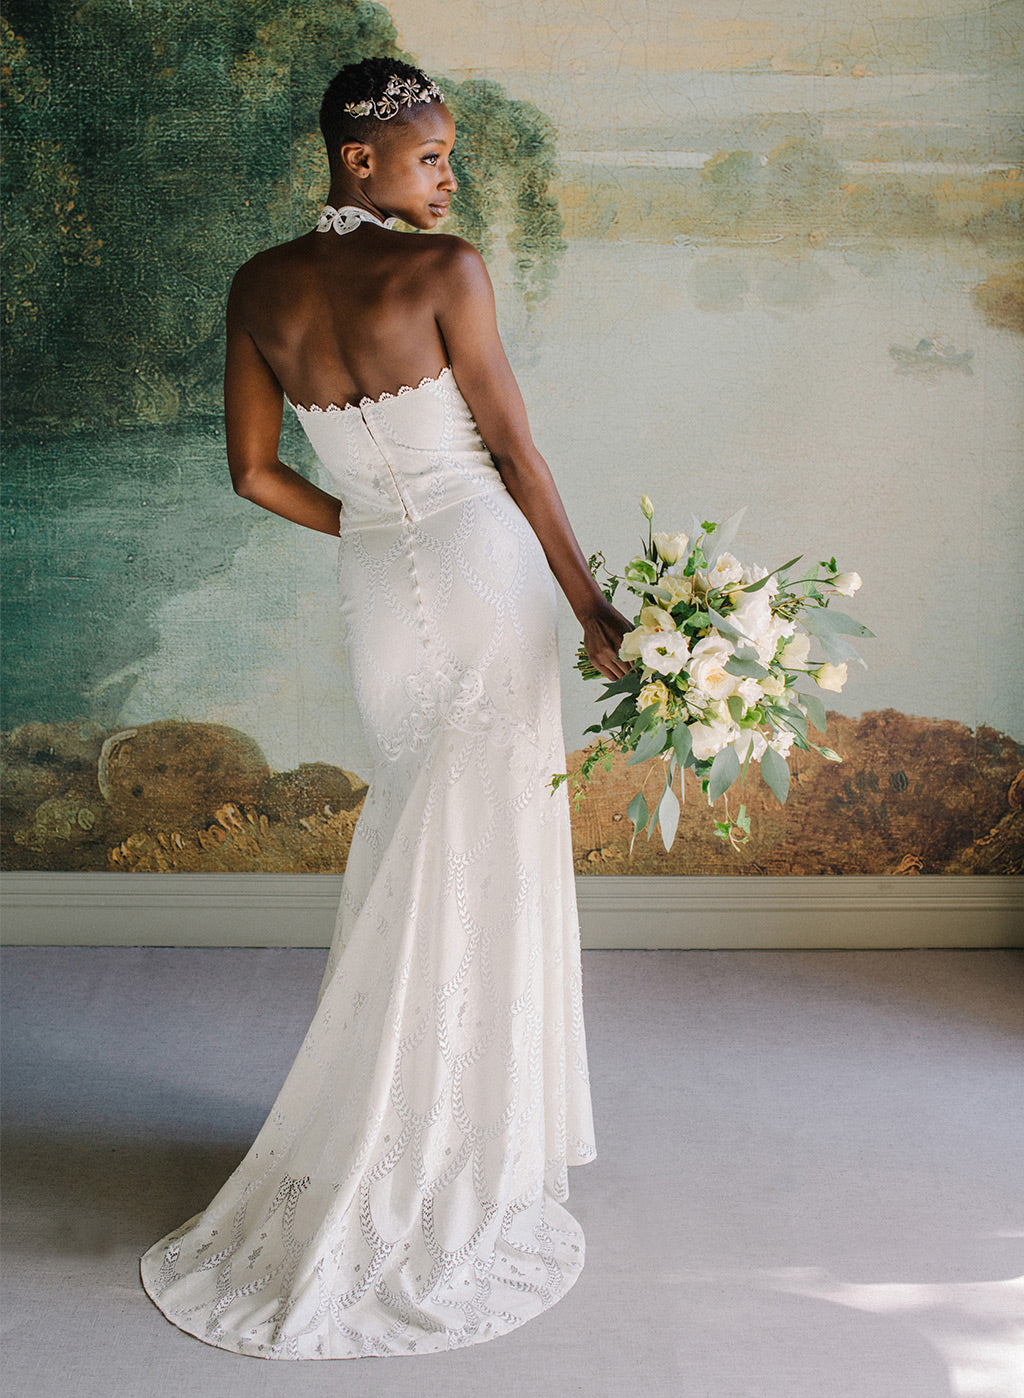 Calypso Lace Halter and Long Skirt Claire Pettibone Ready to Wear Bridal Separates